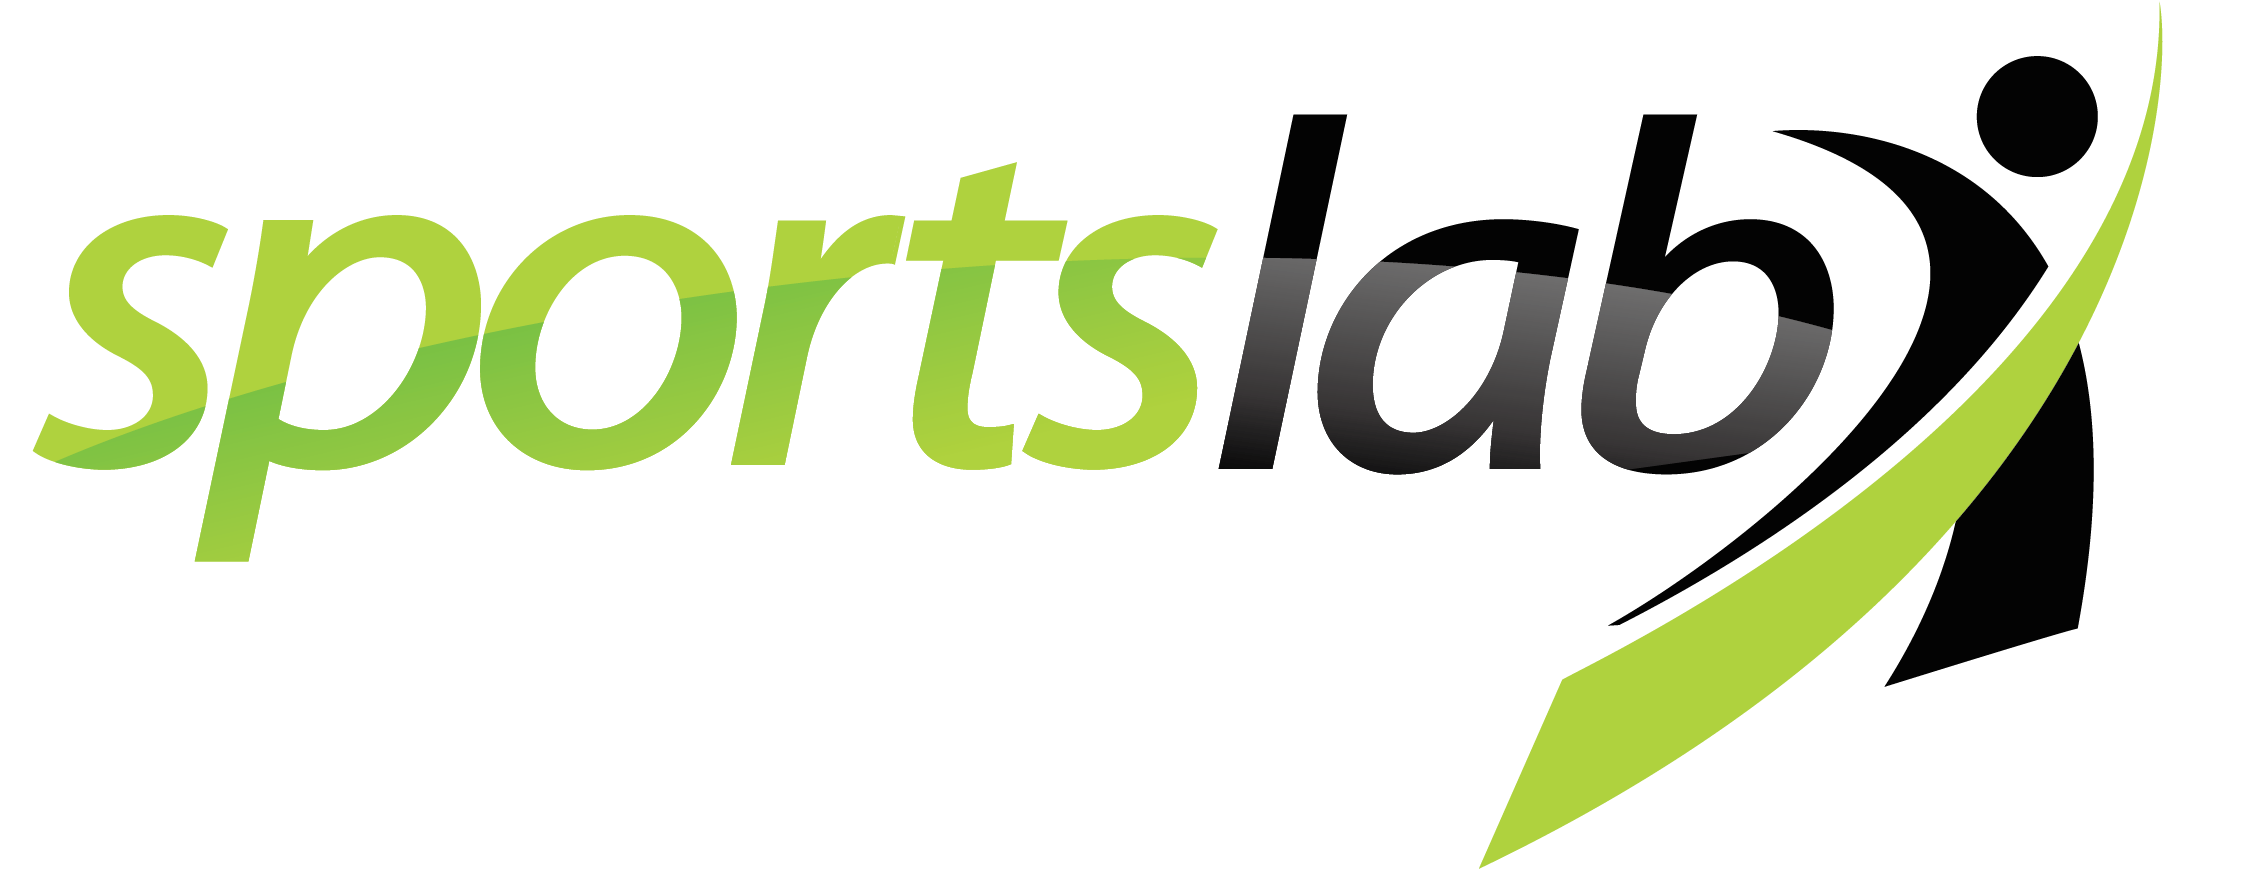 Sports-Lab-CMYK-no-tagline-01-1.png